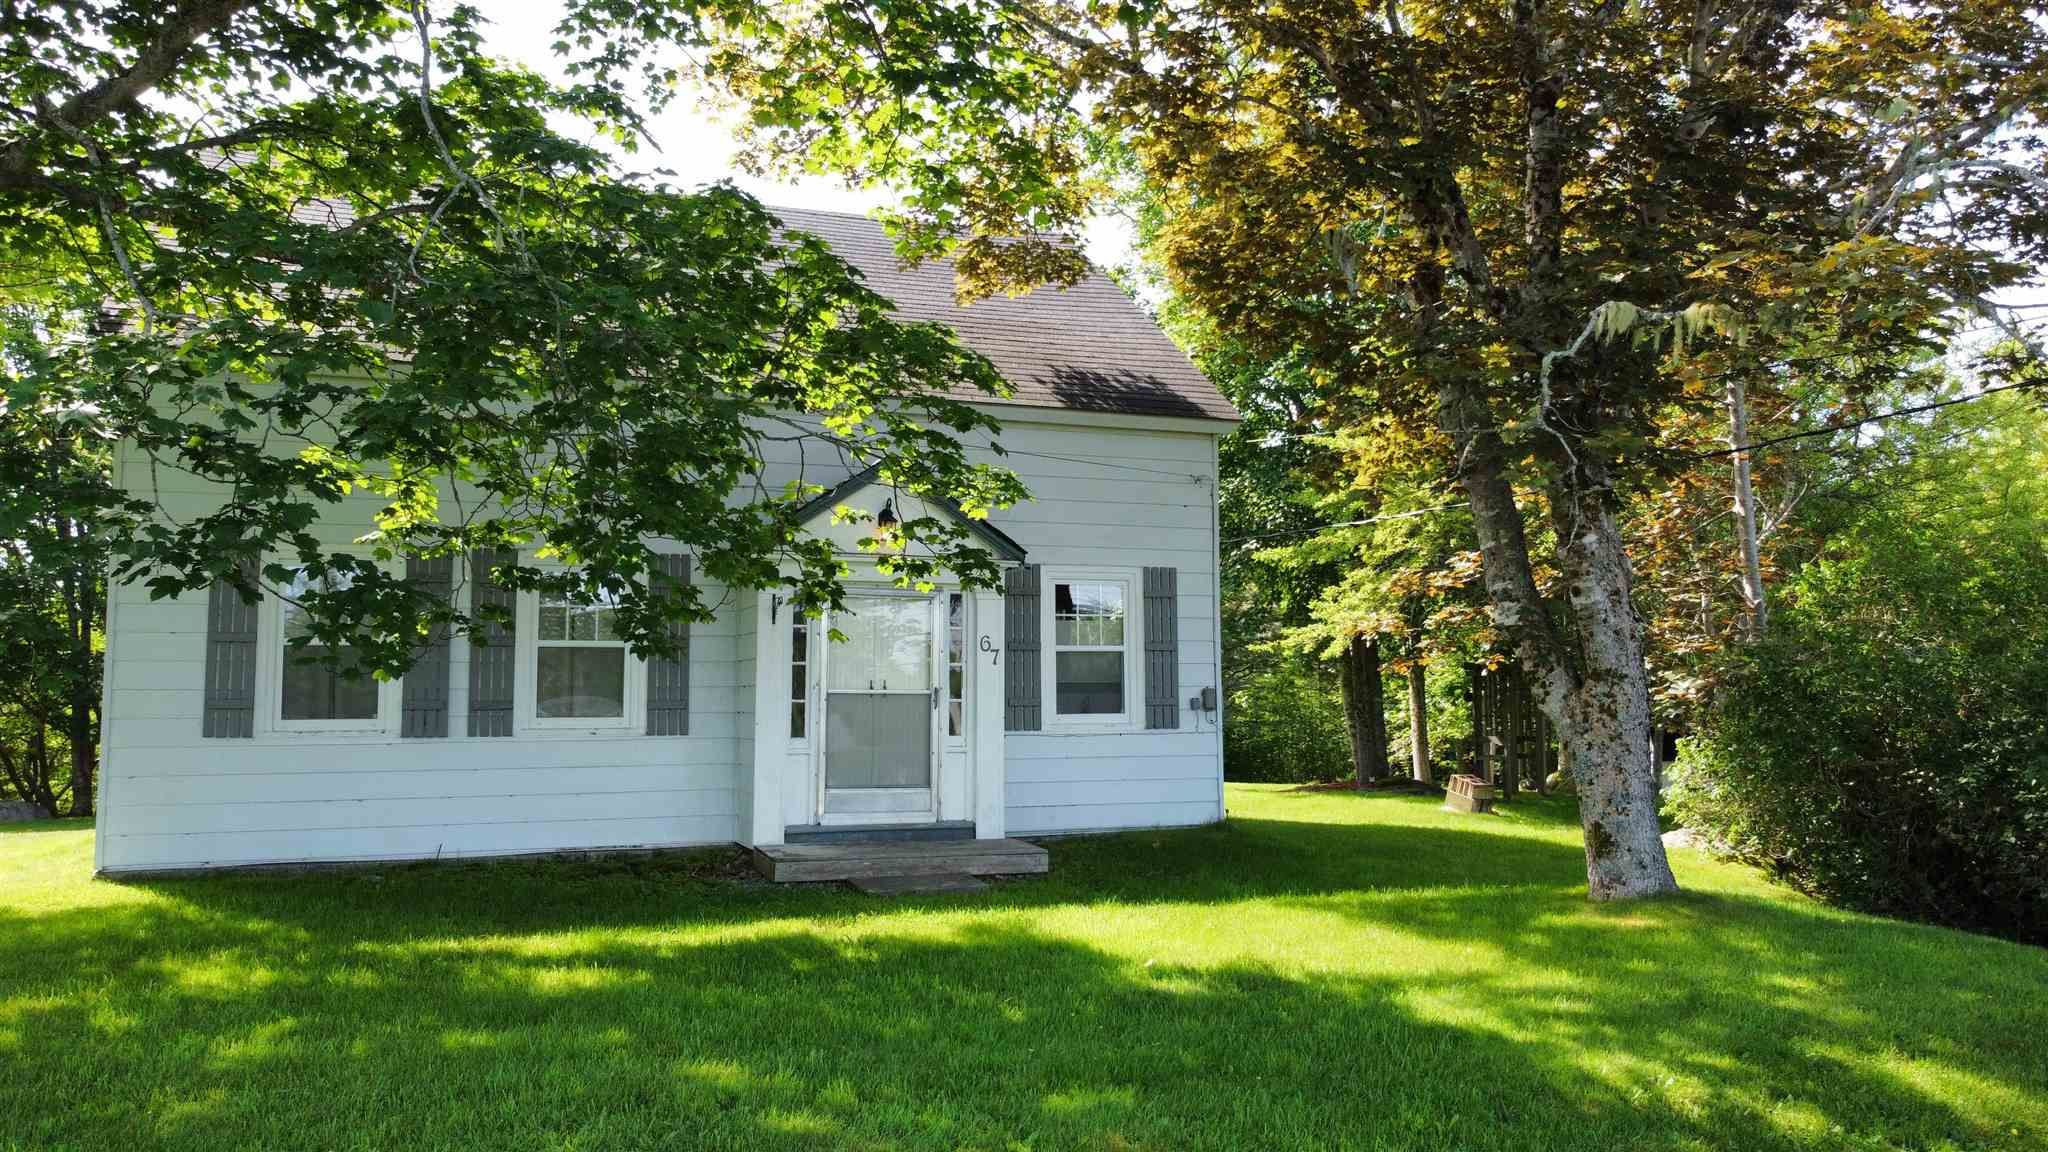 Main Photo: 67 Brass Hill Road in Barrington: 407-Shelburne County Residential for sale (South Shore)  : MLS®# 202116260